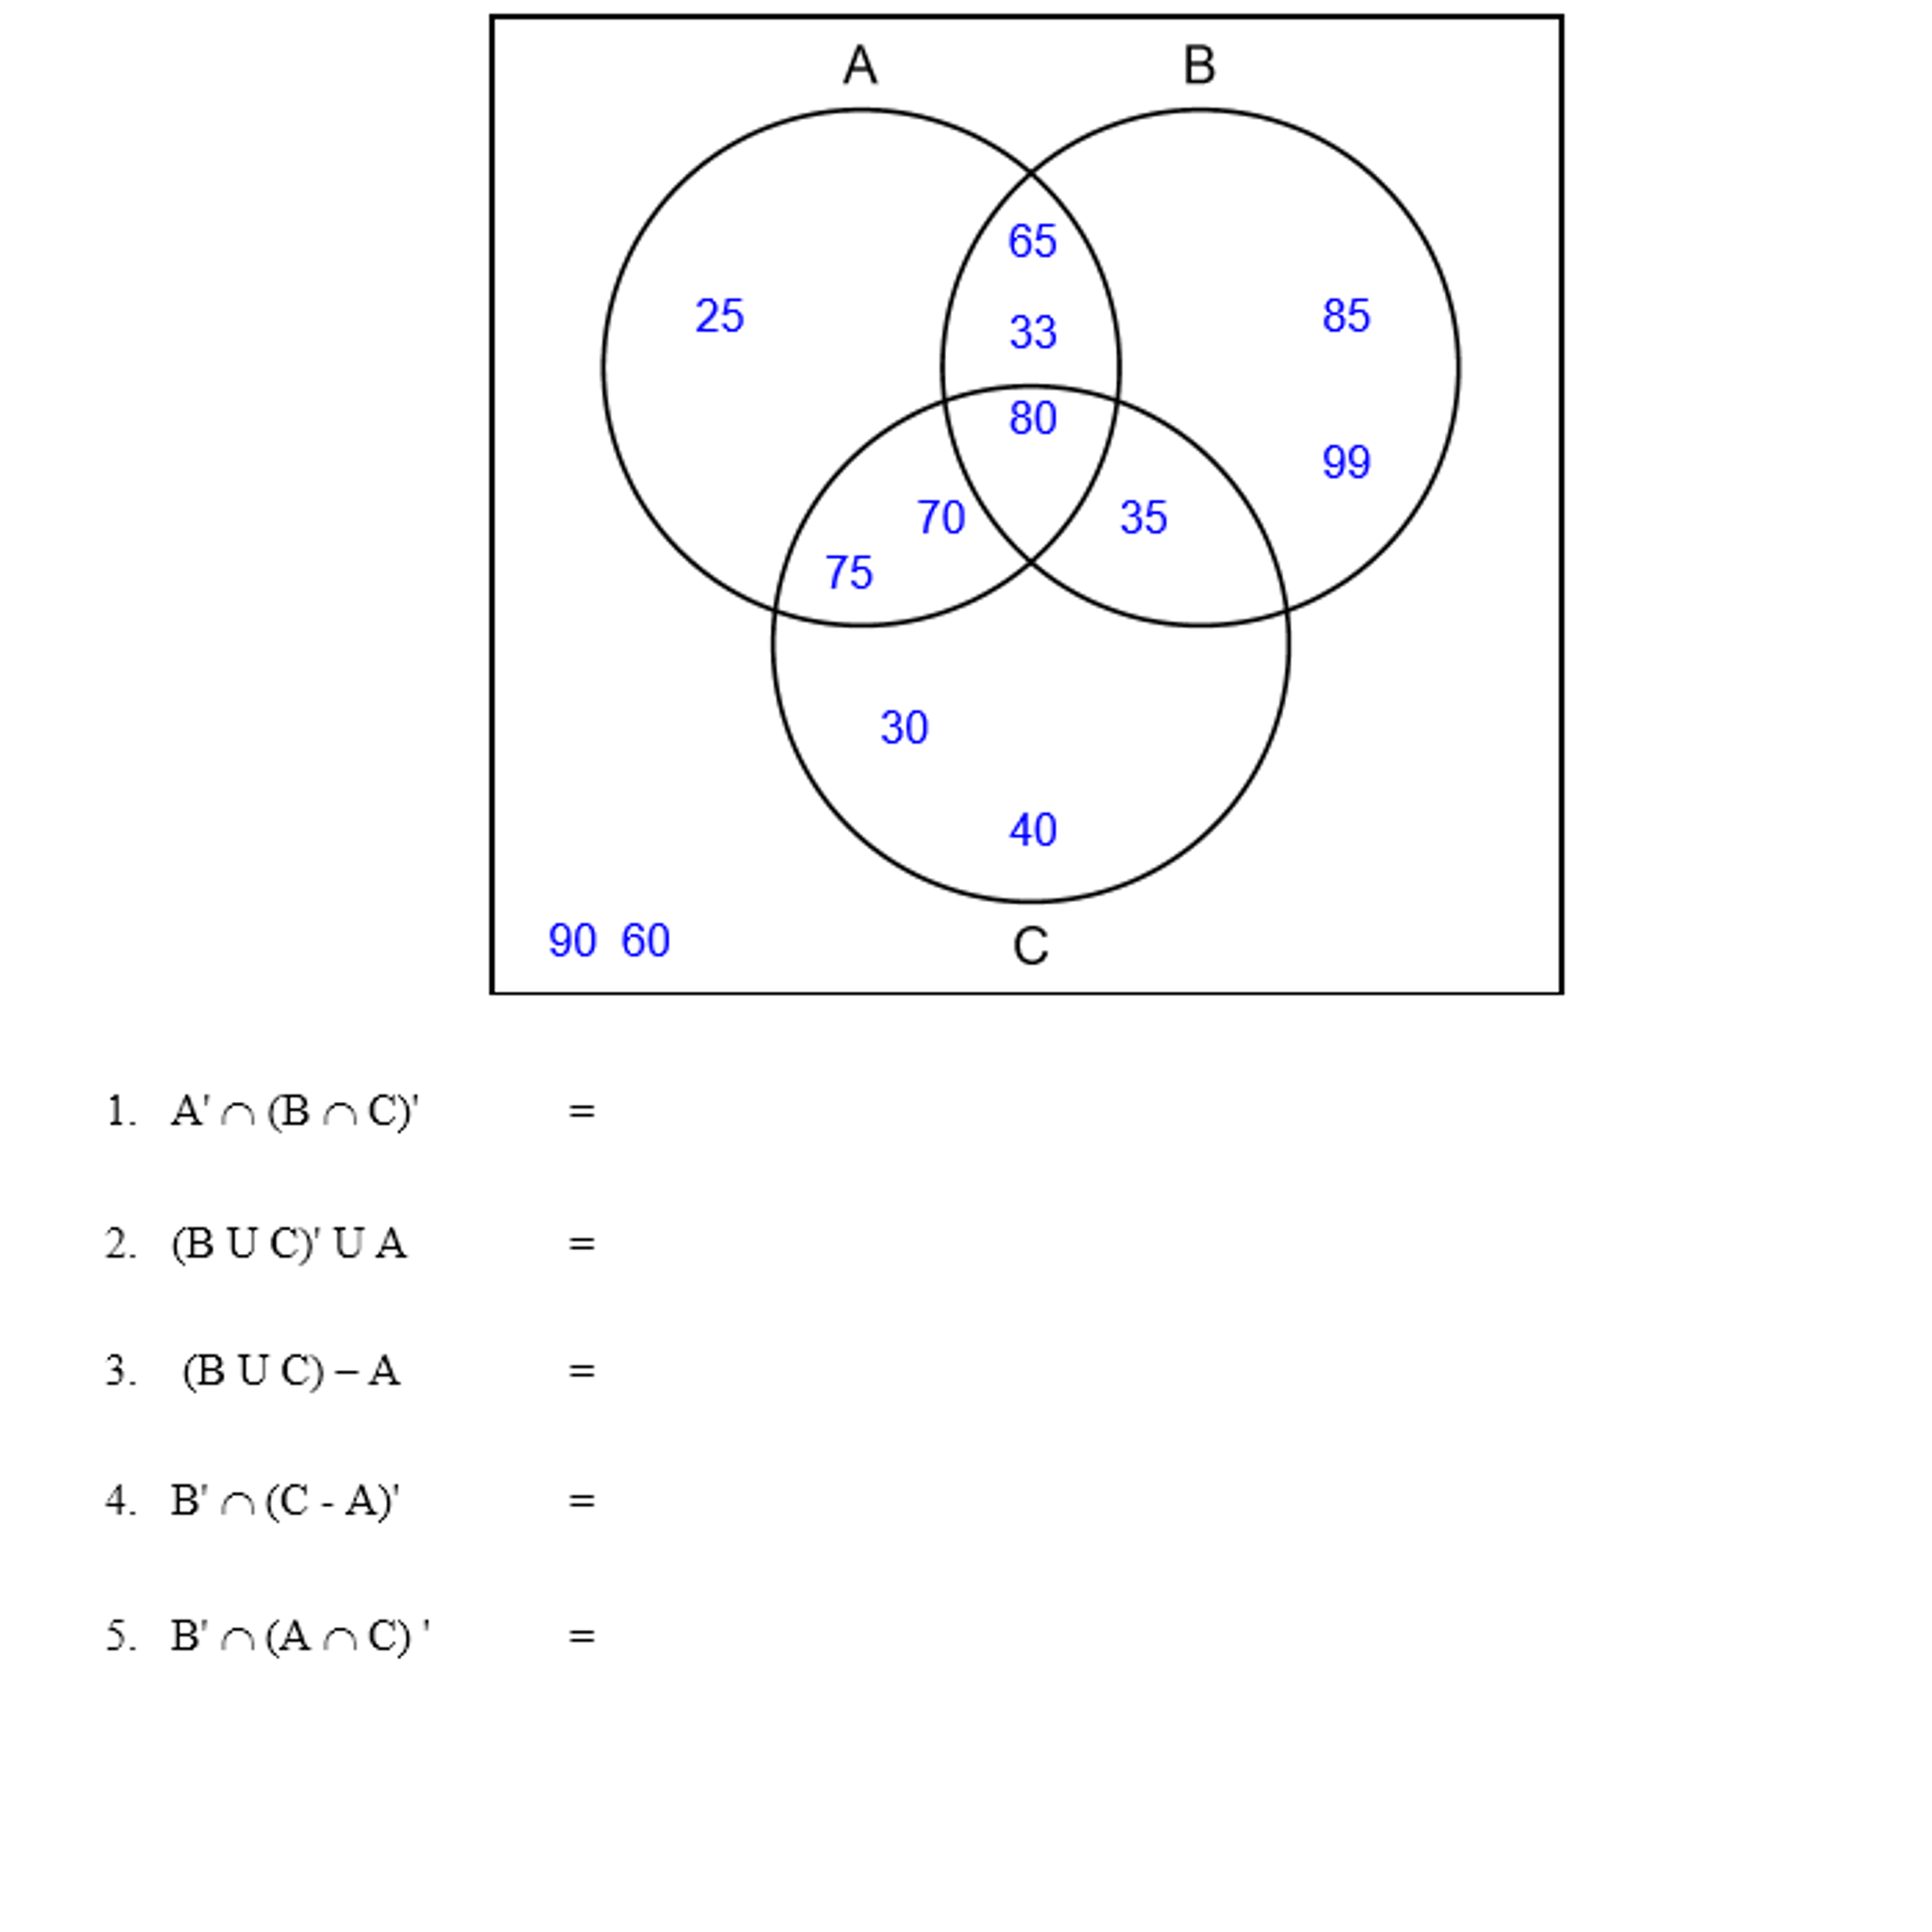 Solved: A' Intersection (B Intersection C)' (B Union C)' U